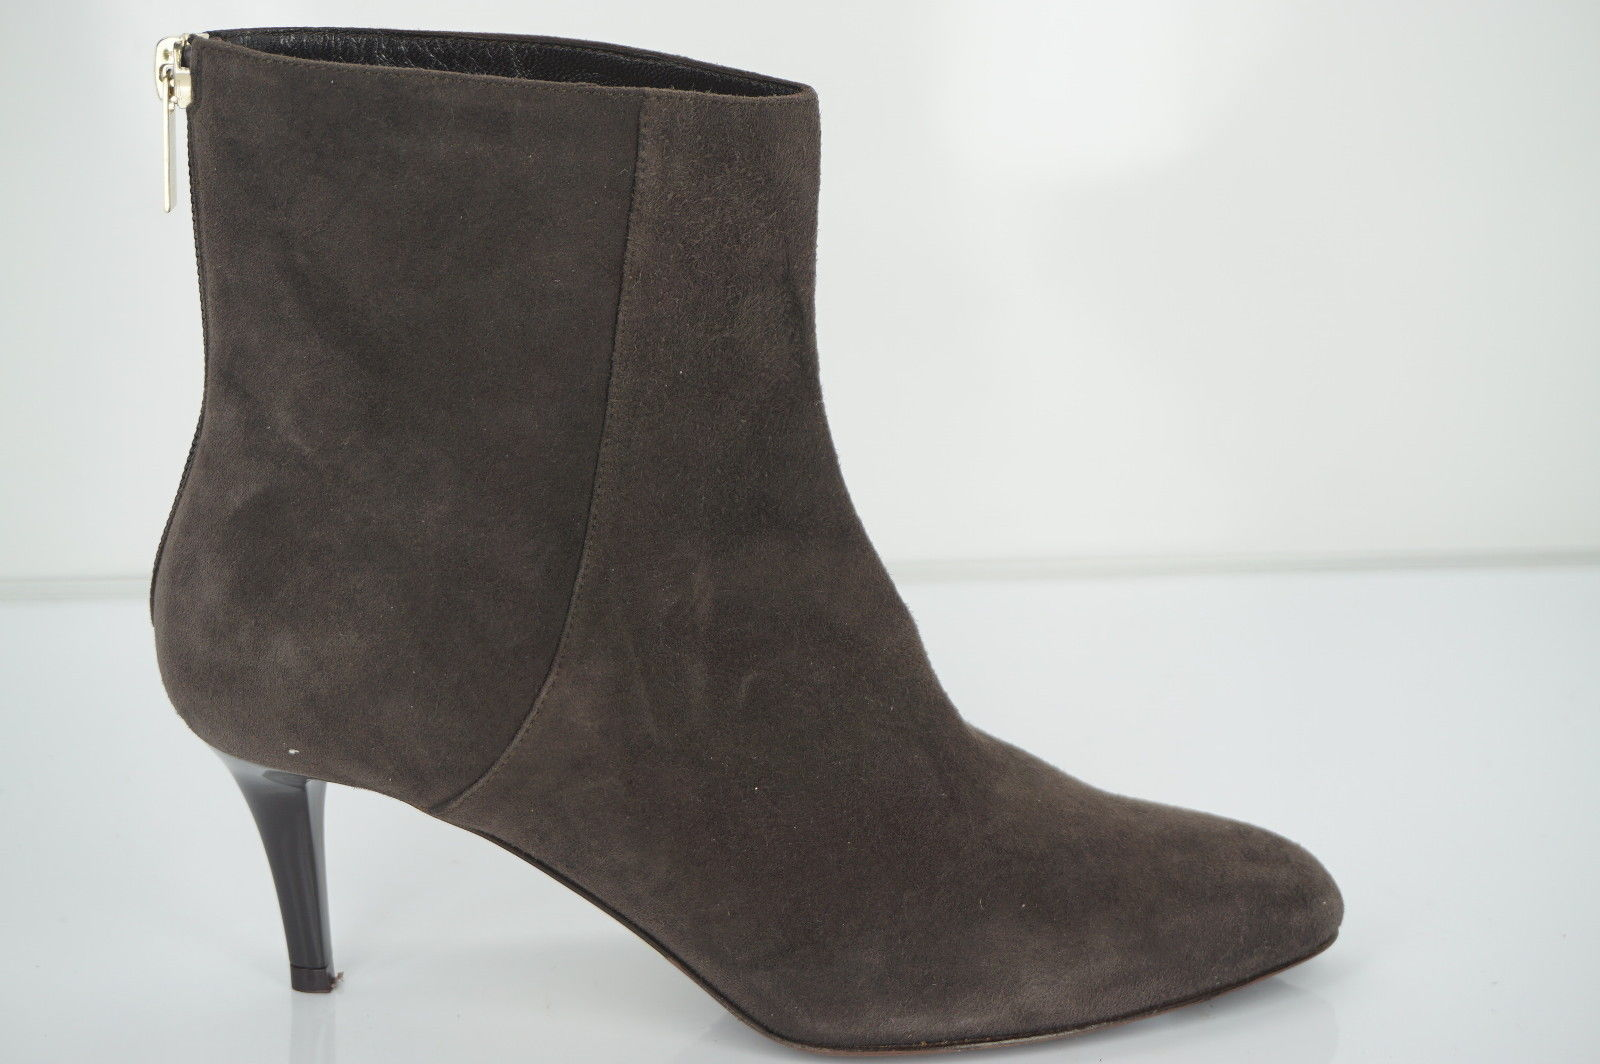 Jimmy Choo Womens Brody Ankle Boot Brown Suede Size 36